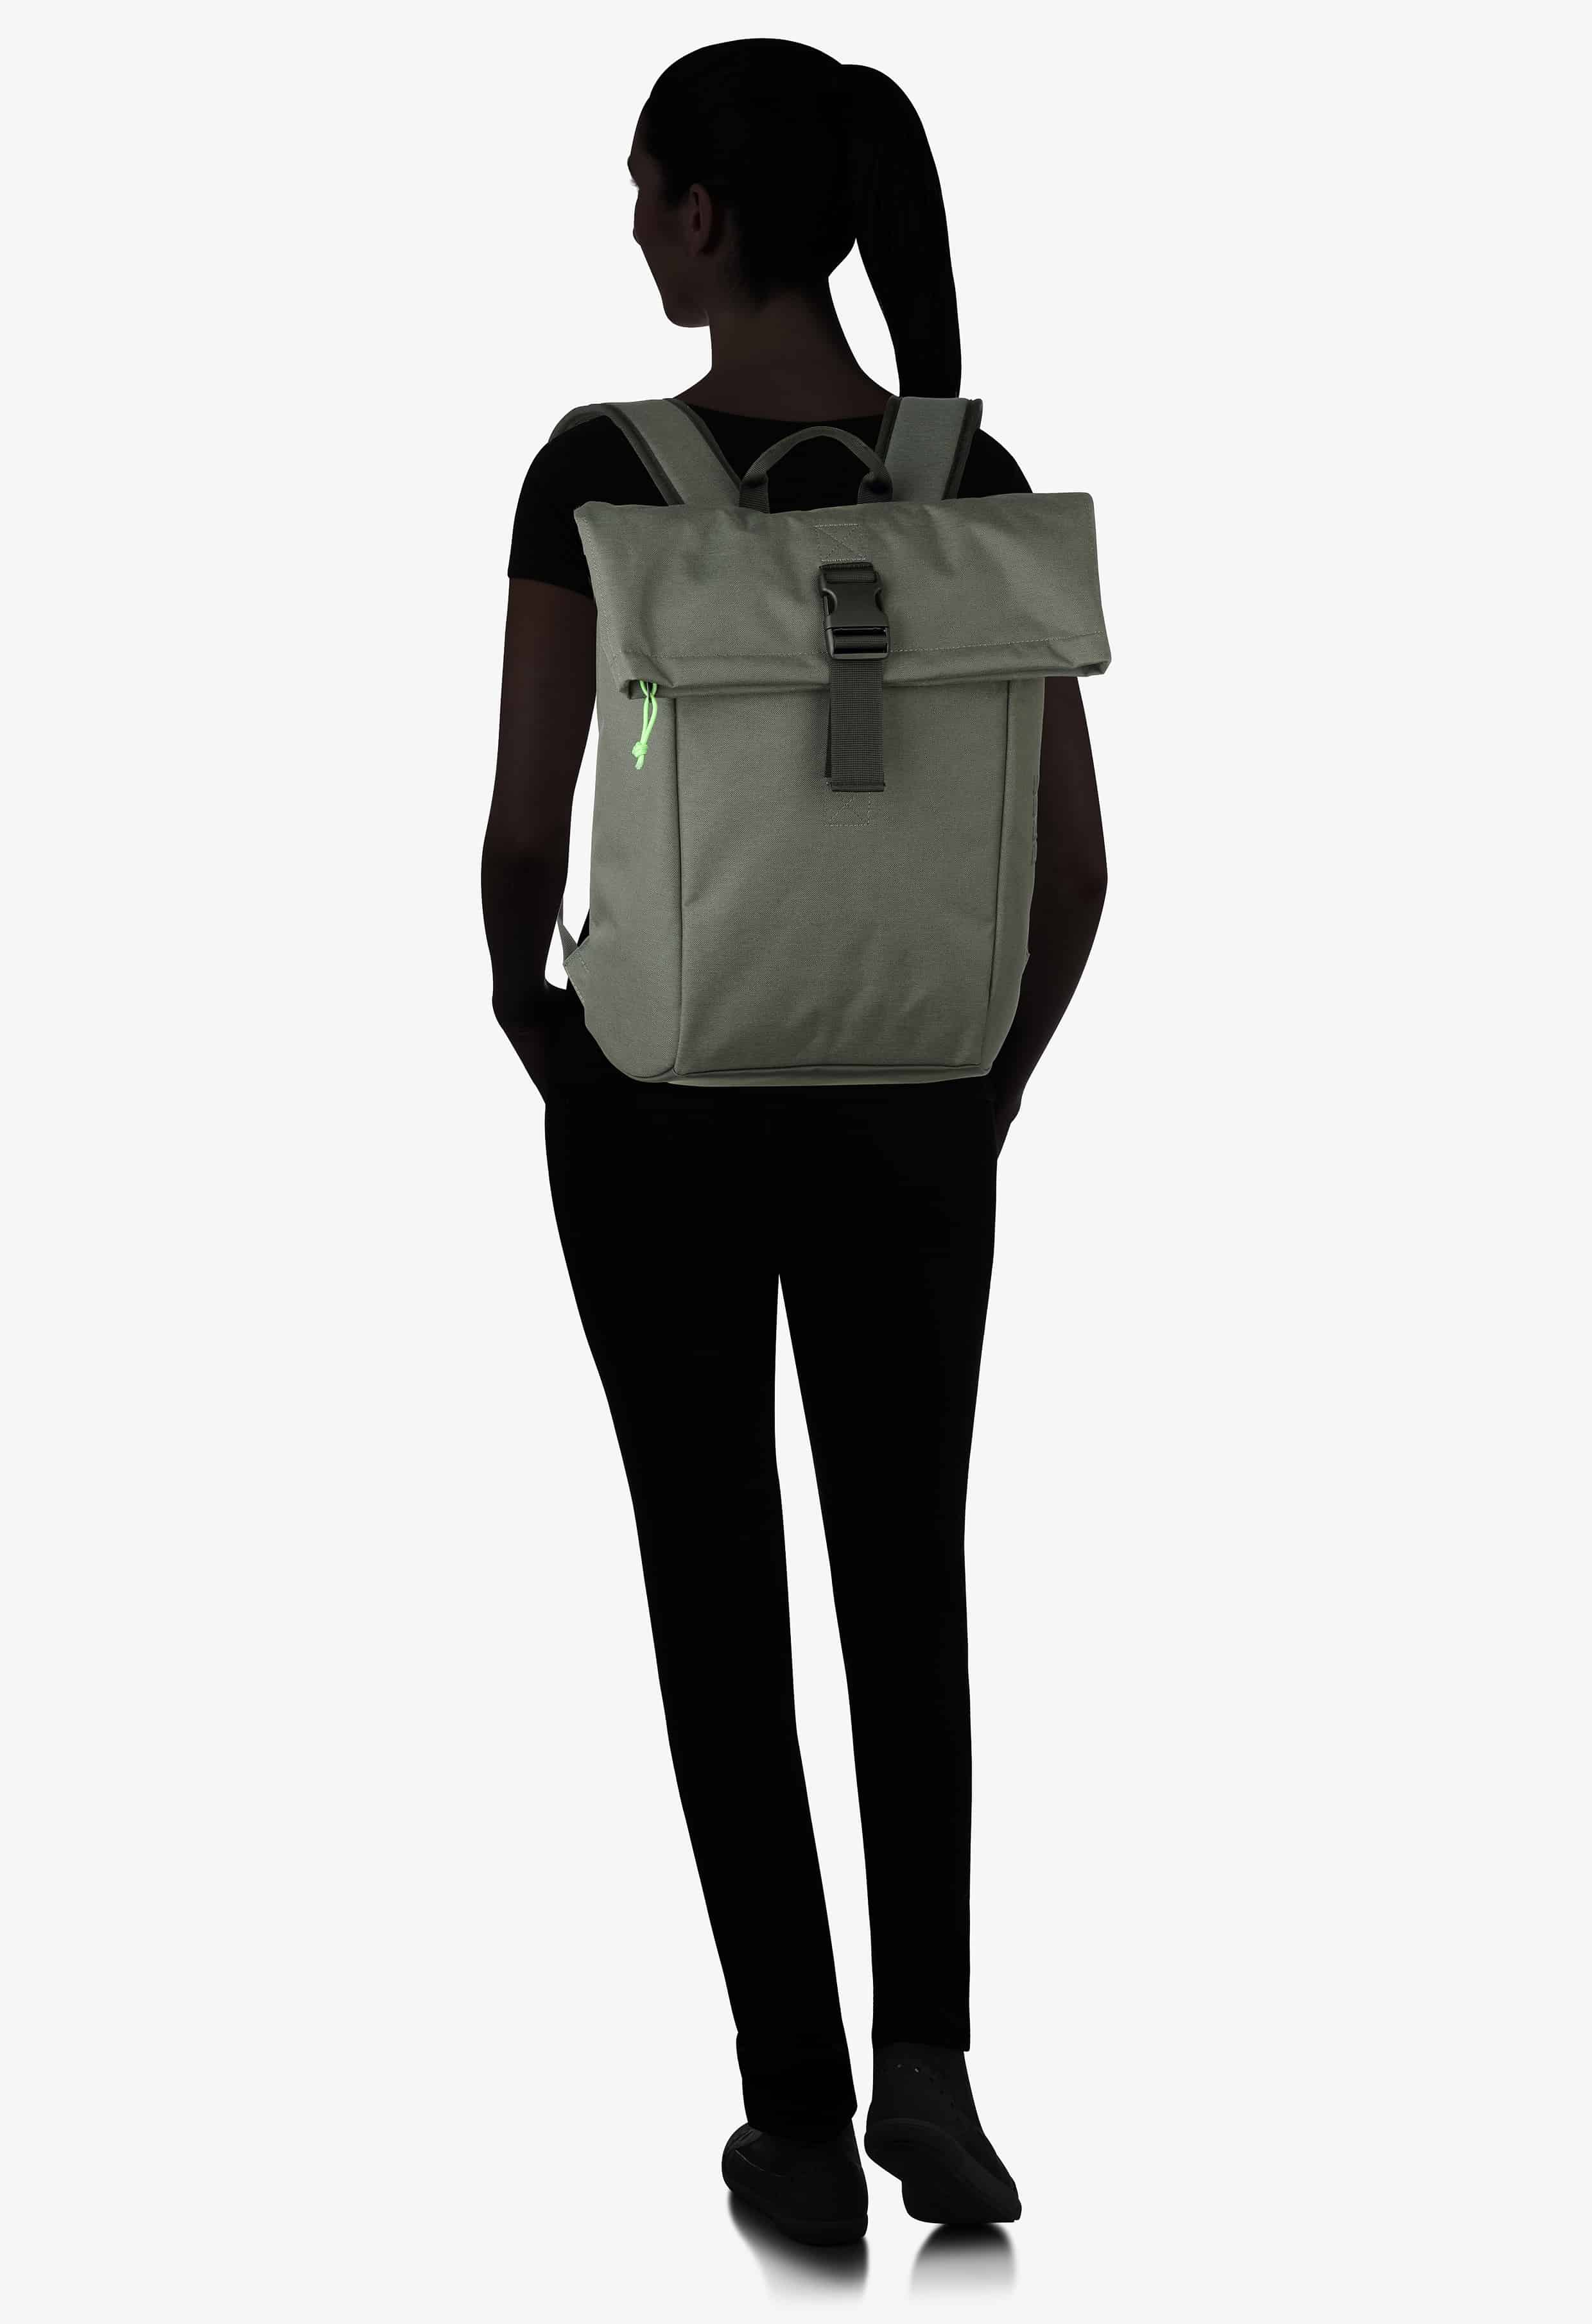 release date discount shop how to buy BREE Punch Style 92 Rucksack S Polyester 13 Liter wasserabweisend